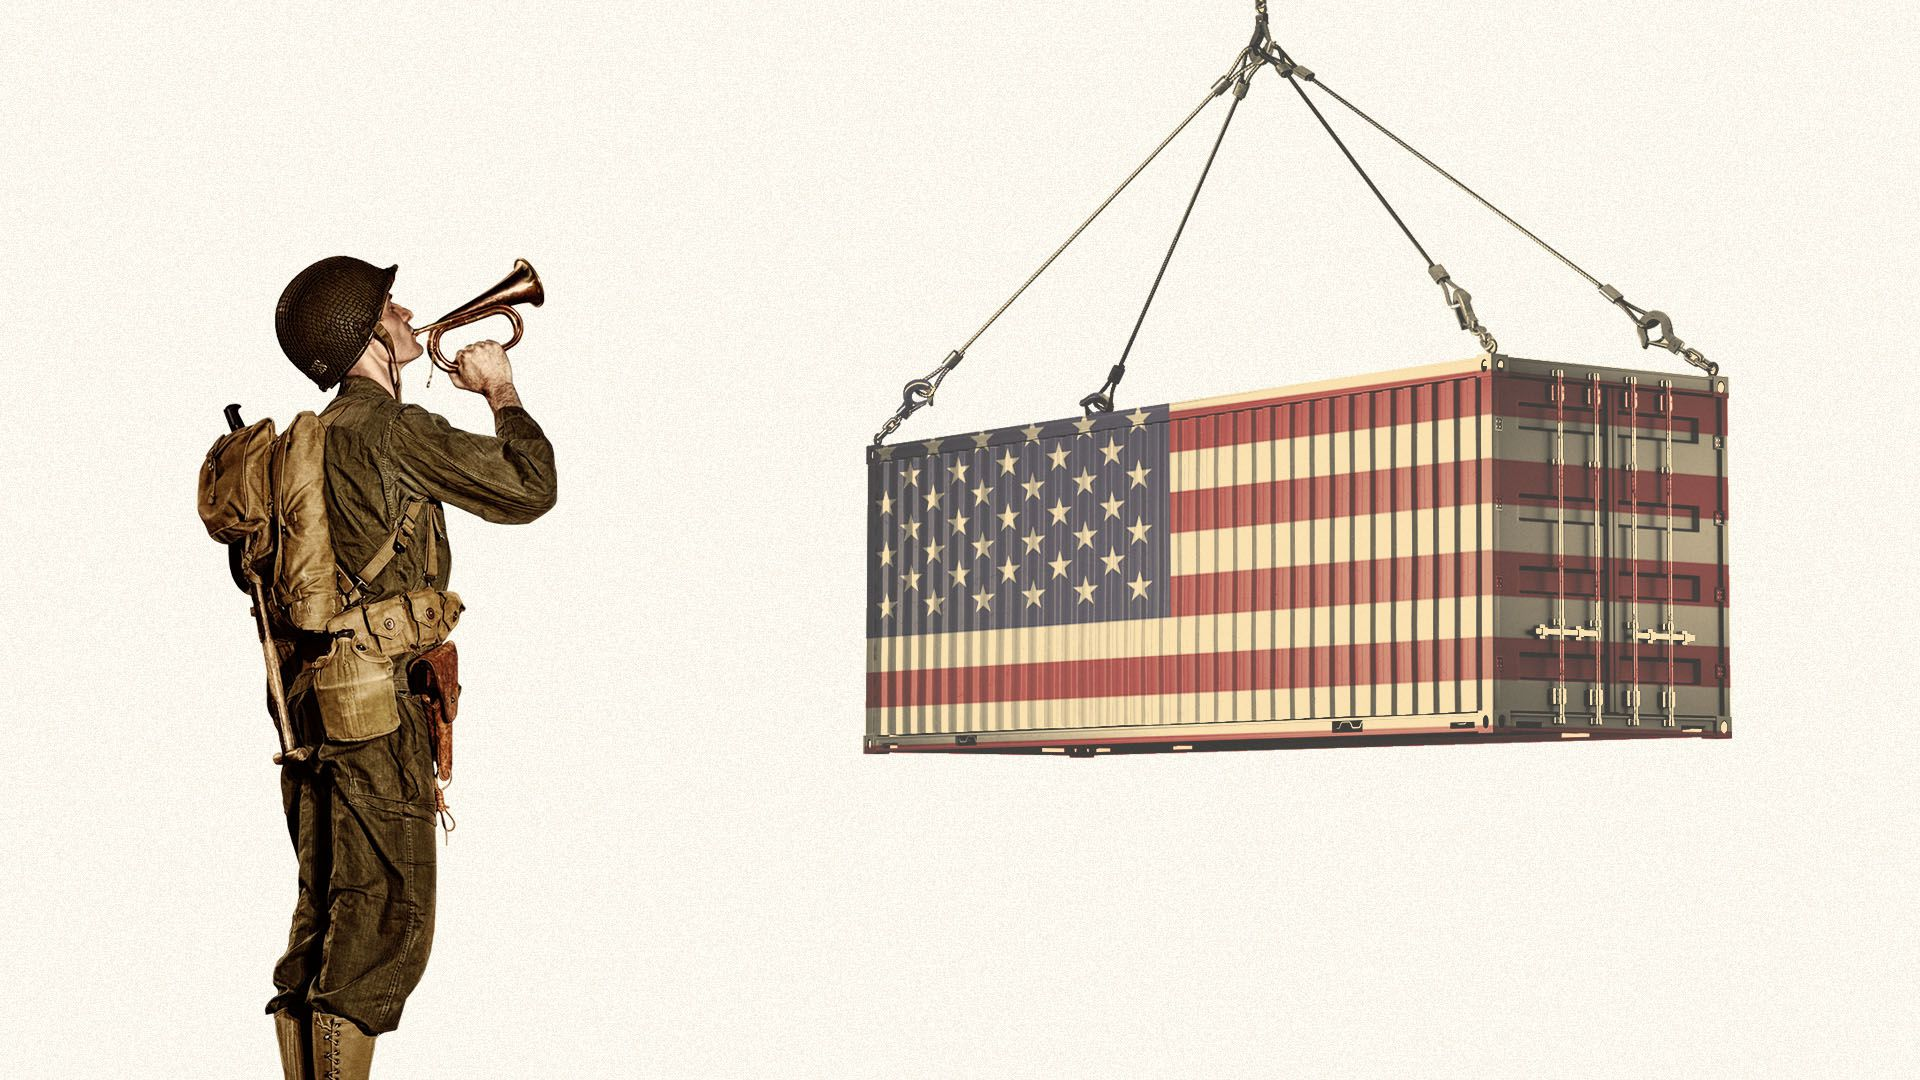 Illustration of a World War II soldier playing taps to an American flag shipping container.